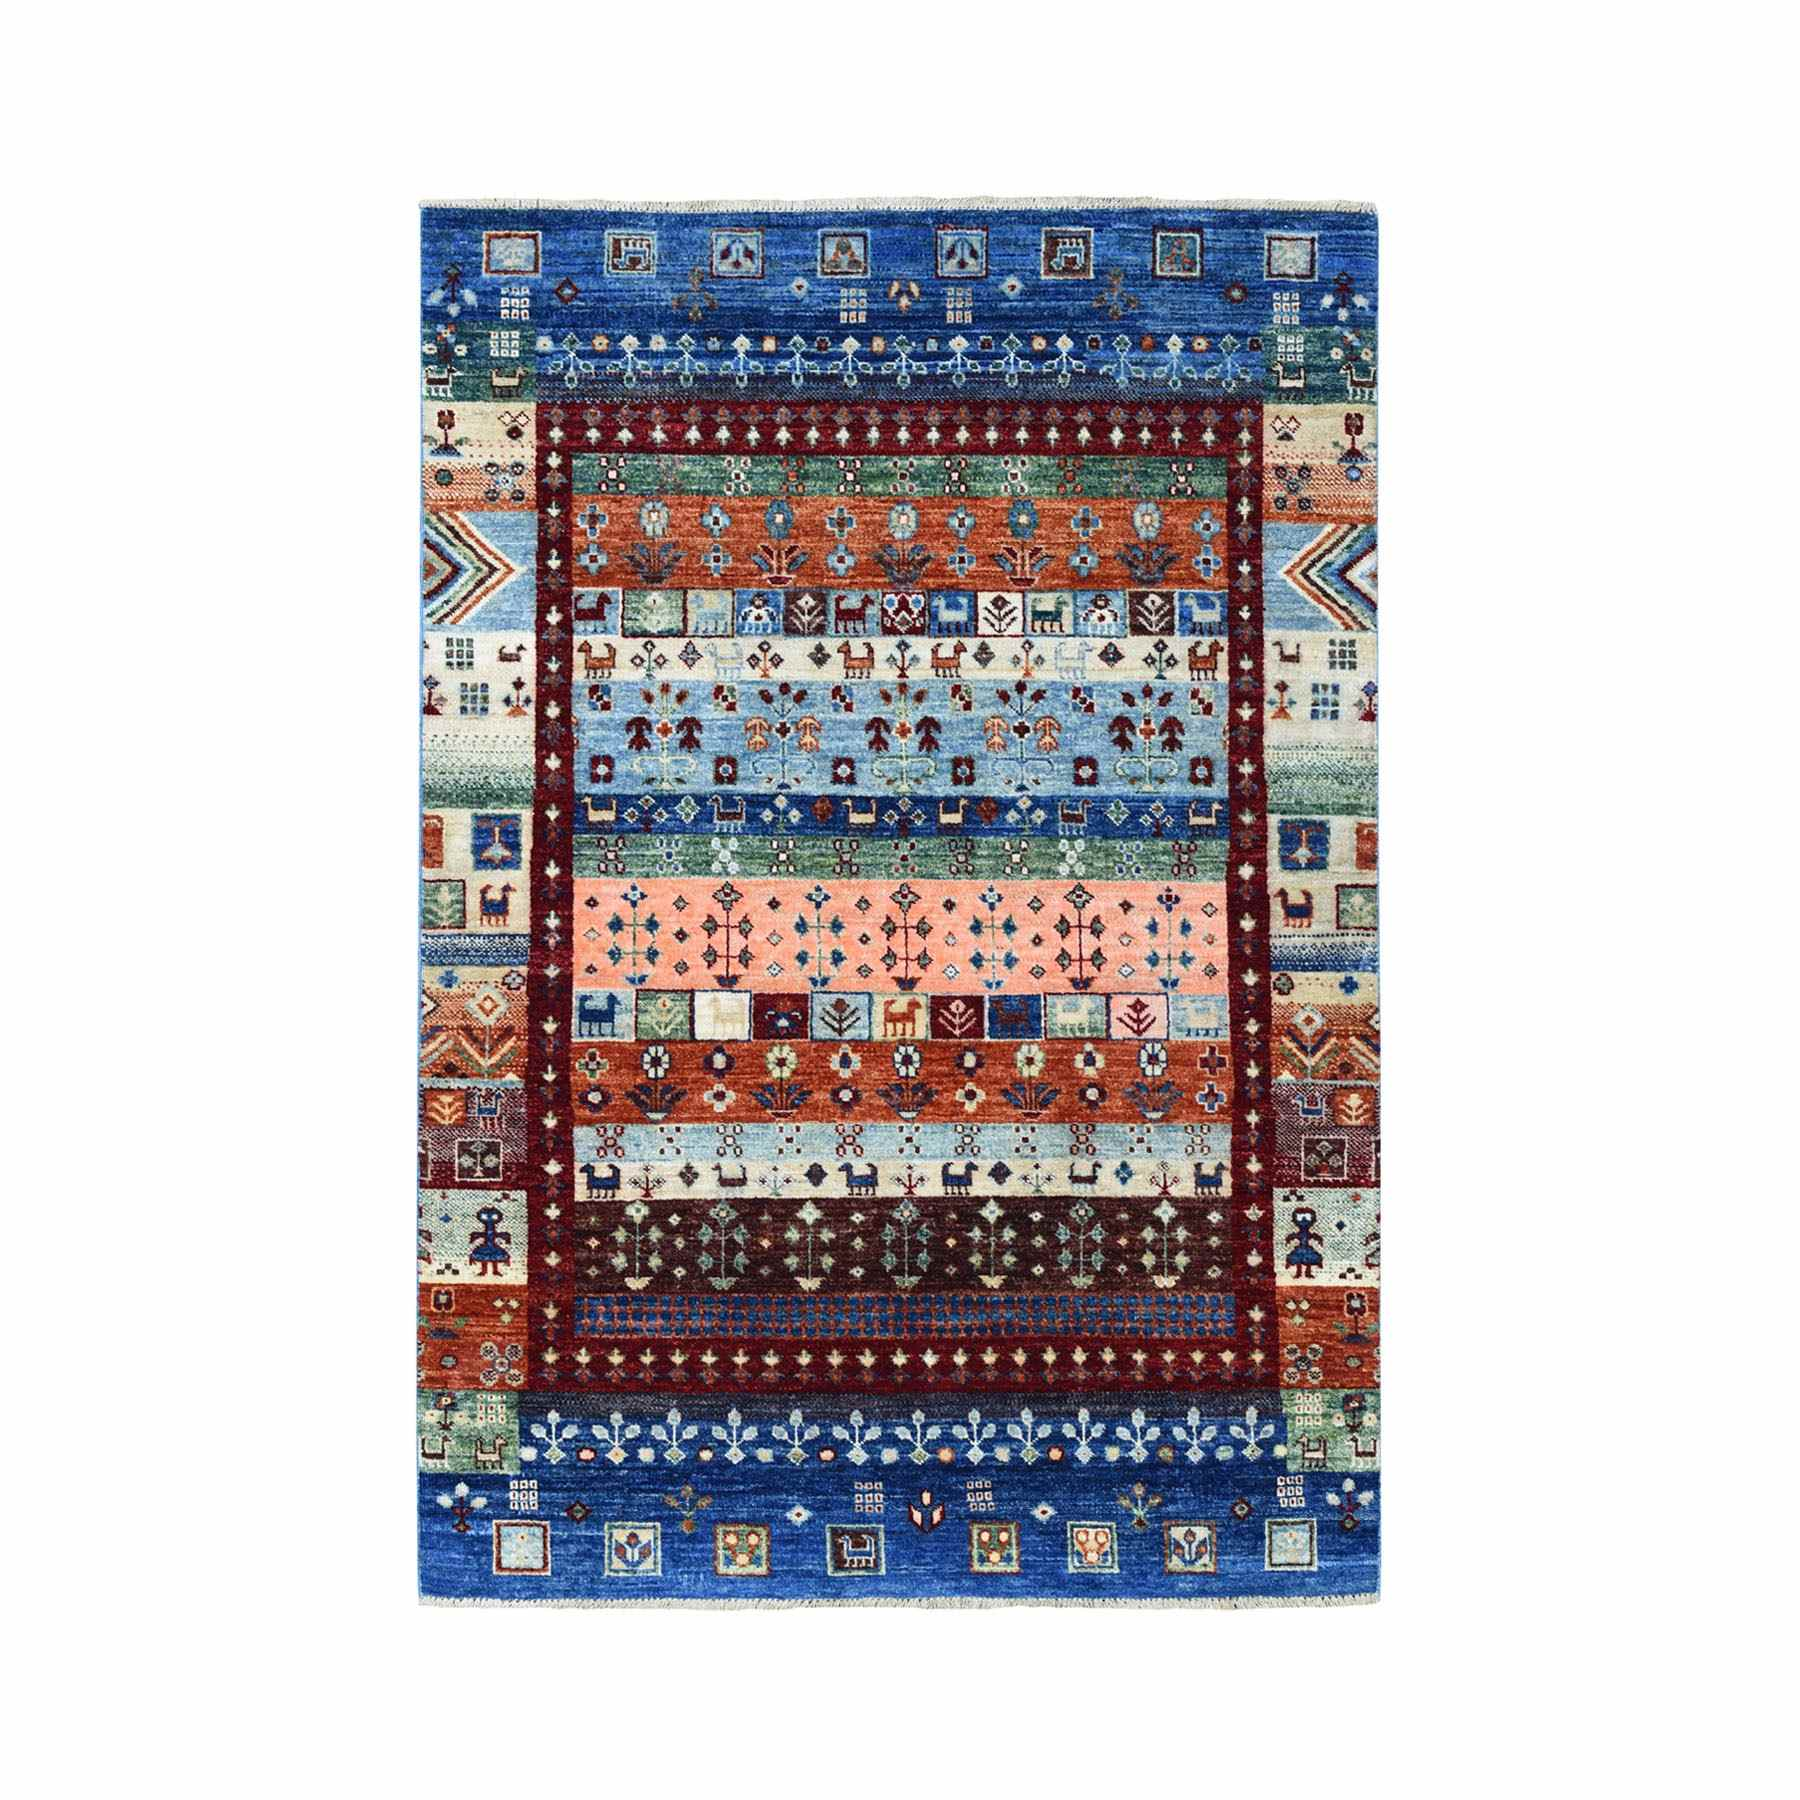 Tribal-Geometric-Hand-Knotted-Rug-258090